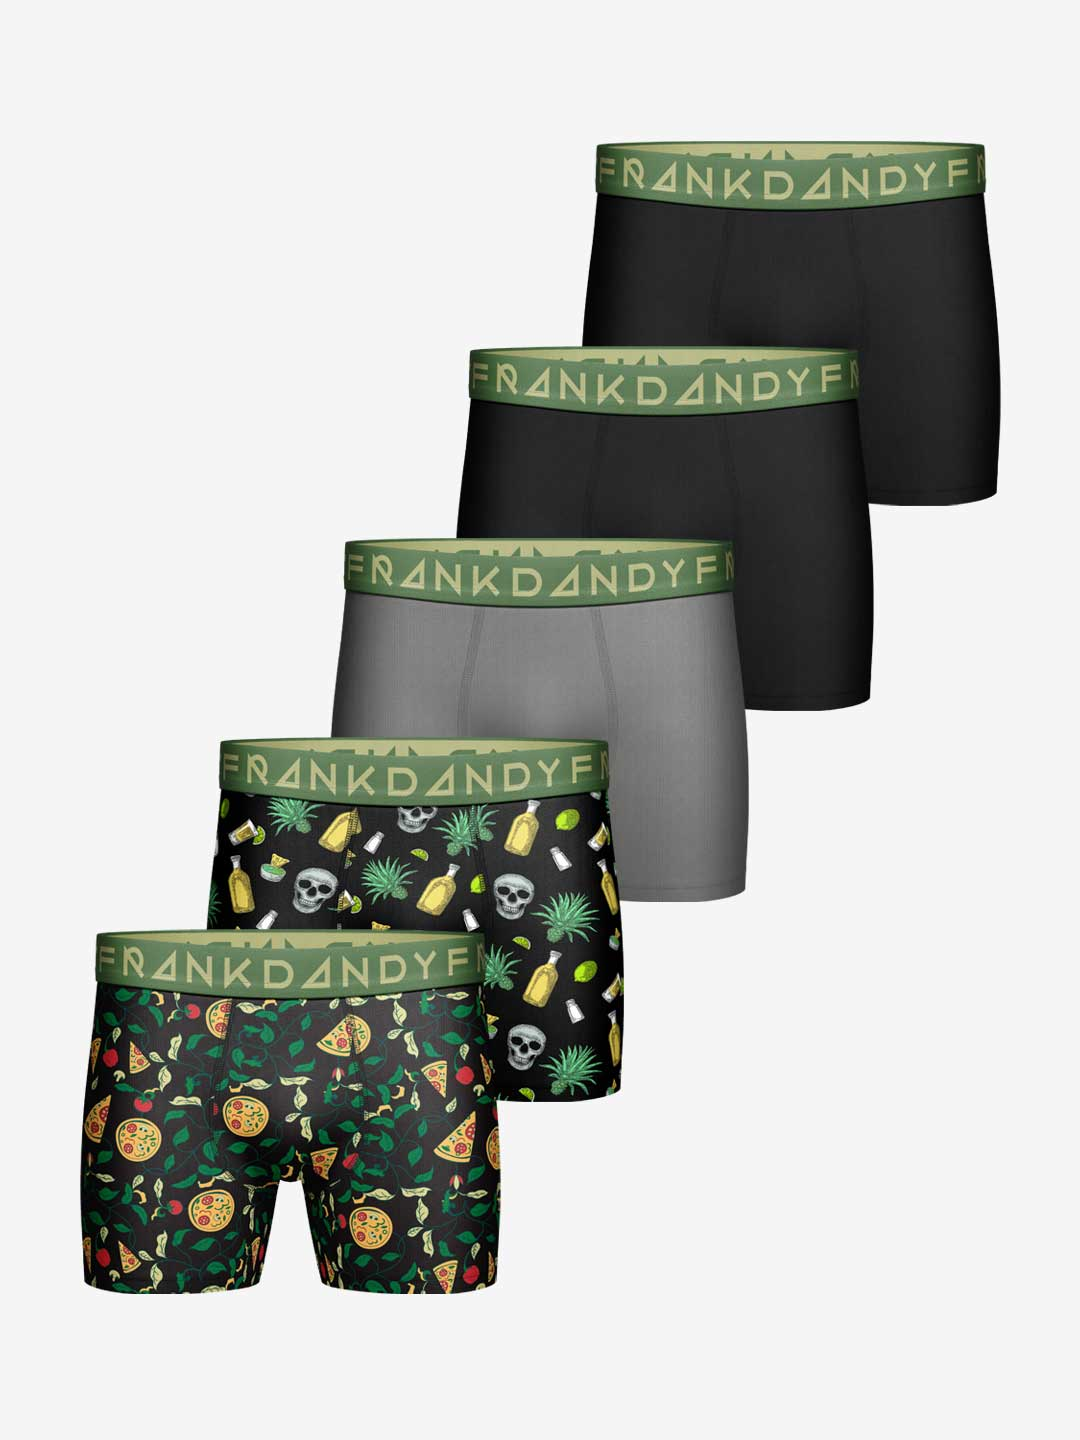 Frank Dandy 5-Pack Pizza Party Boxer